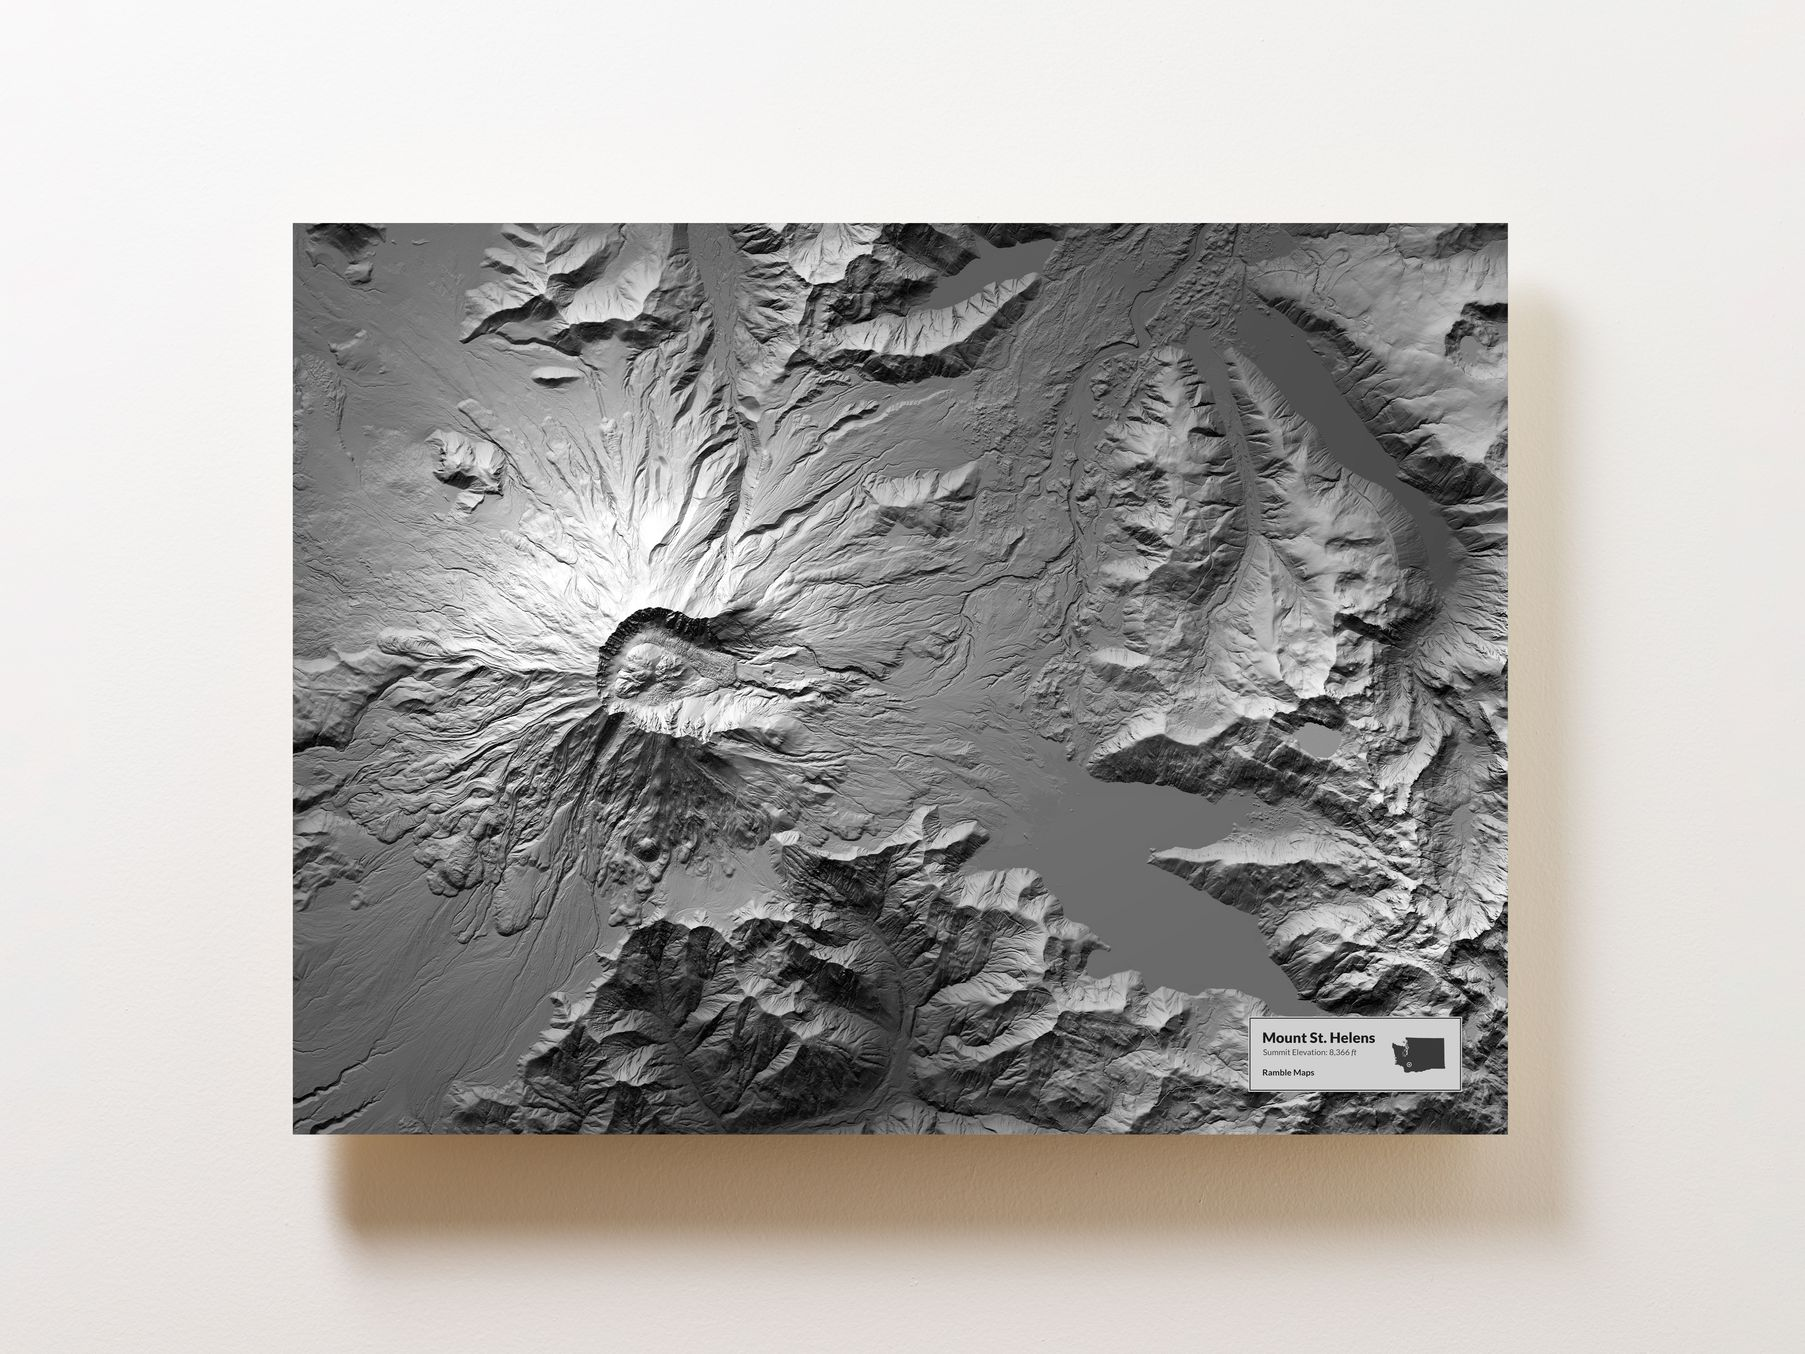 Elevation Map of Mount St. Helens, Ramble Maps